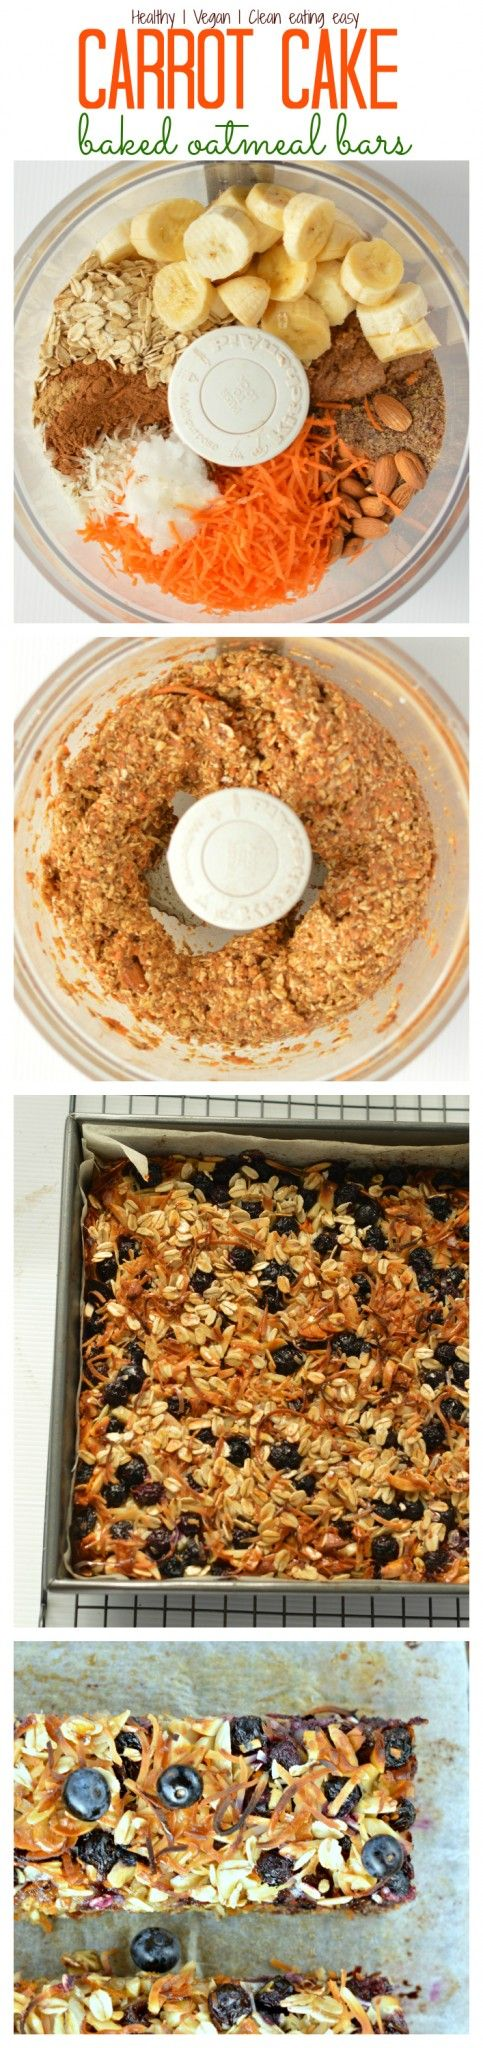 Carrot Cake Baked Oatmeal Bars | Healthy Breakfast